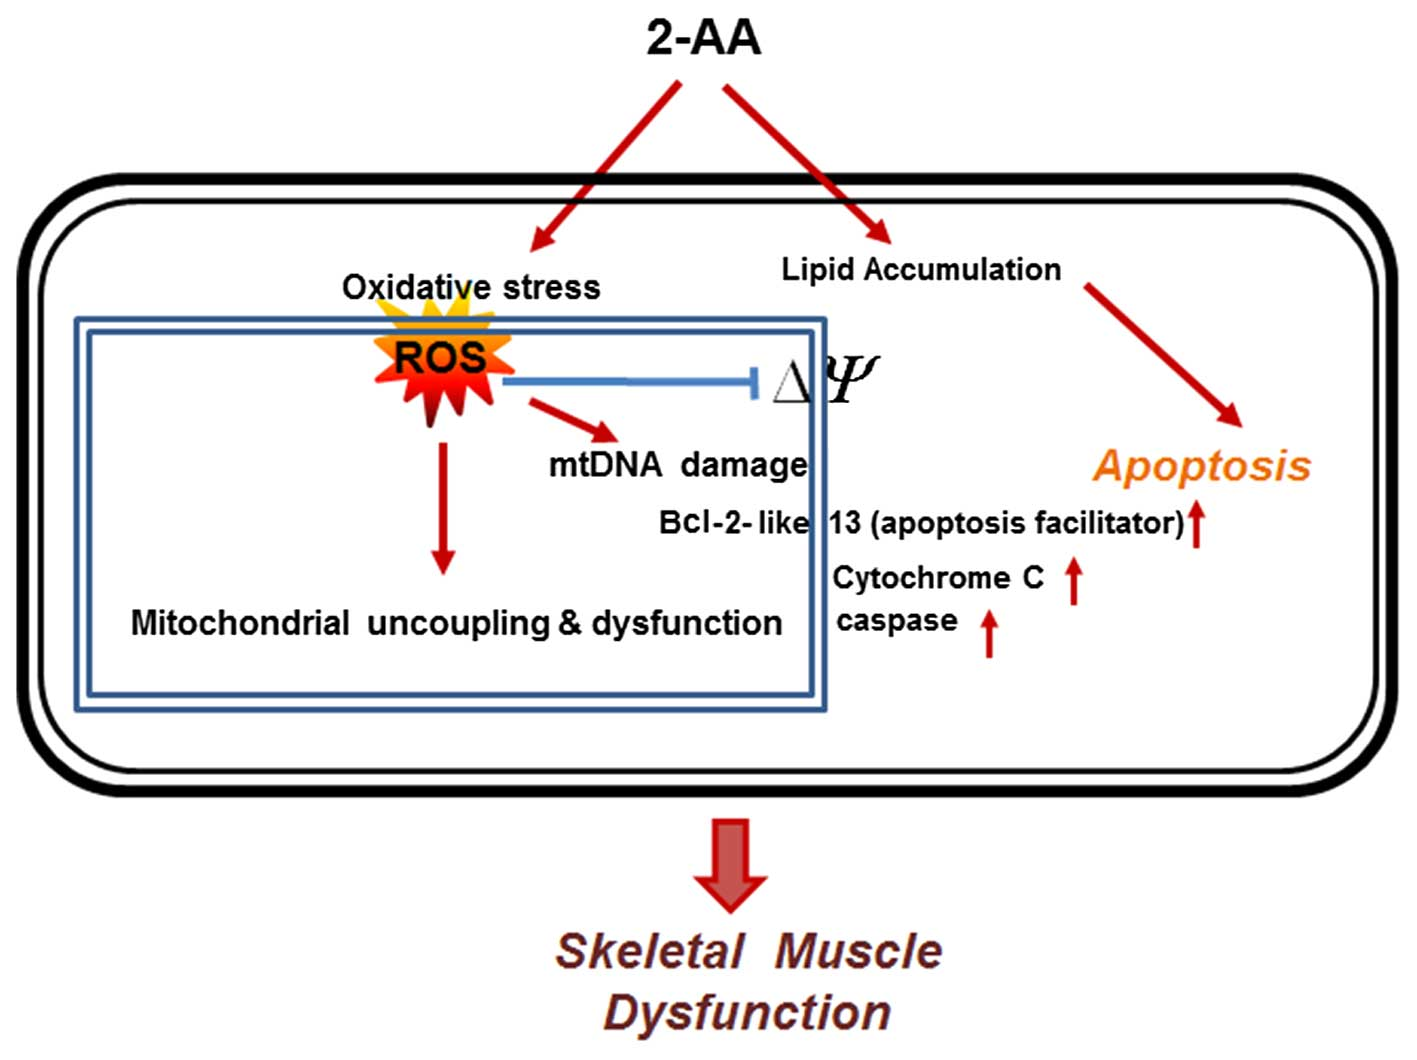 representative schematic diagram showing that 2-aminoacetophenone (2-aa)  induces oxidative stress and apoptosis in skeletal muscle